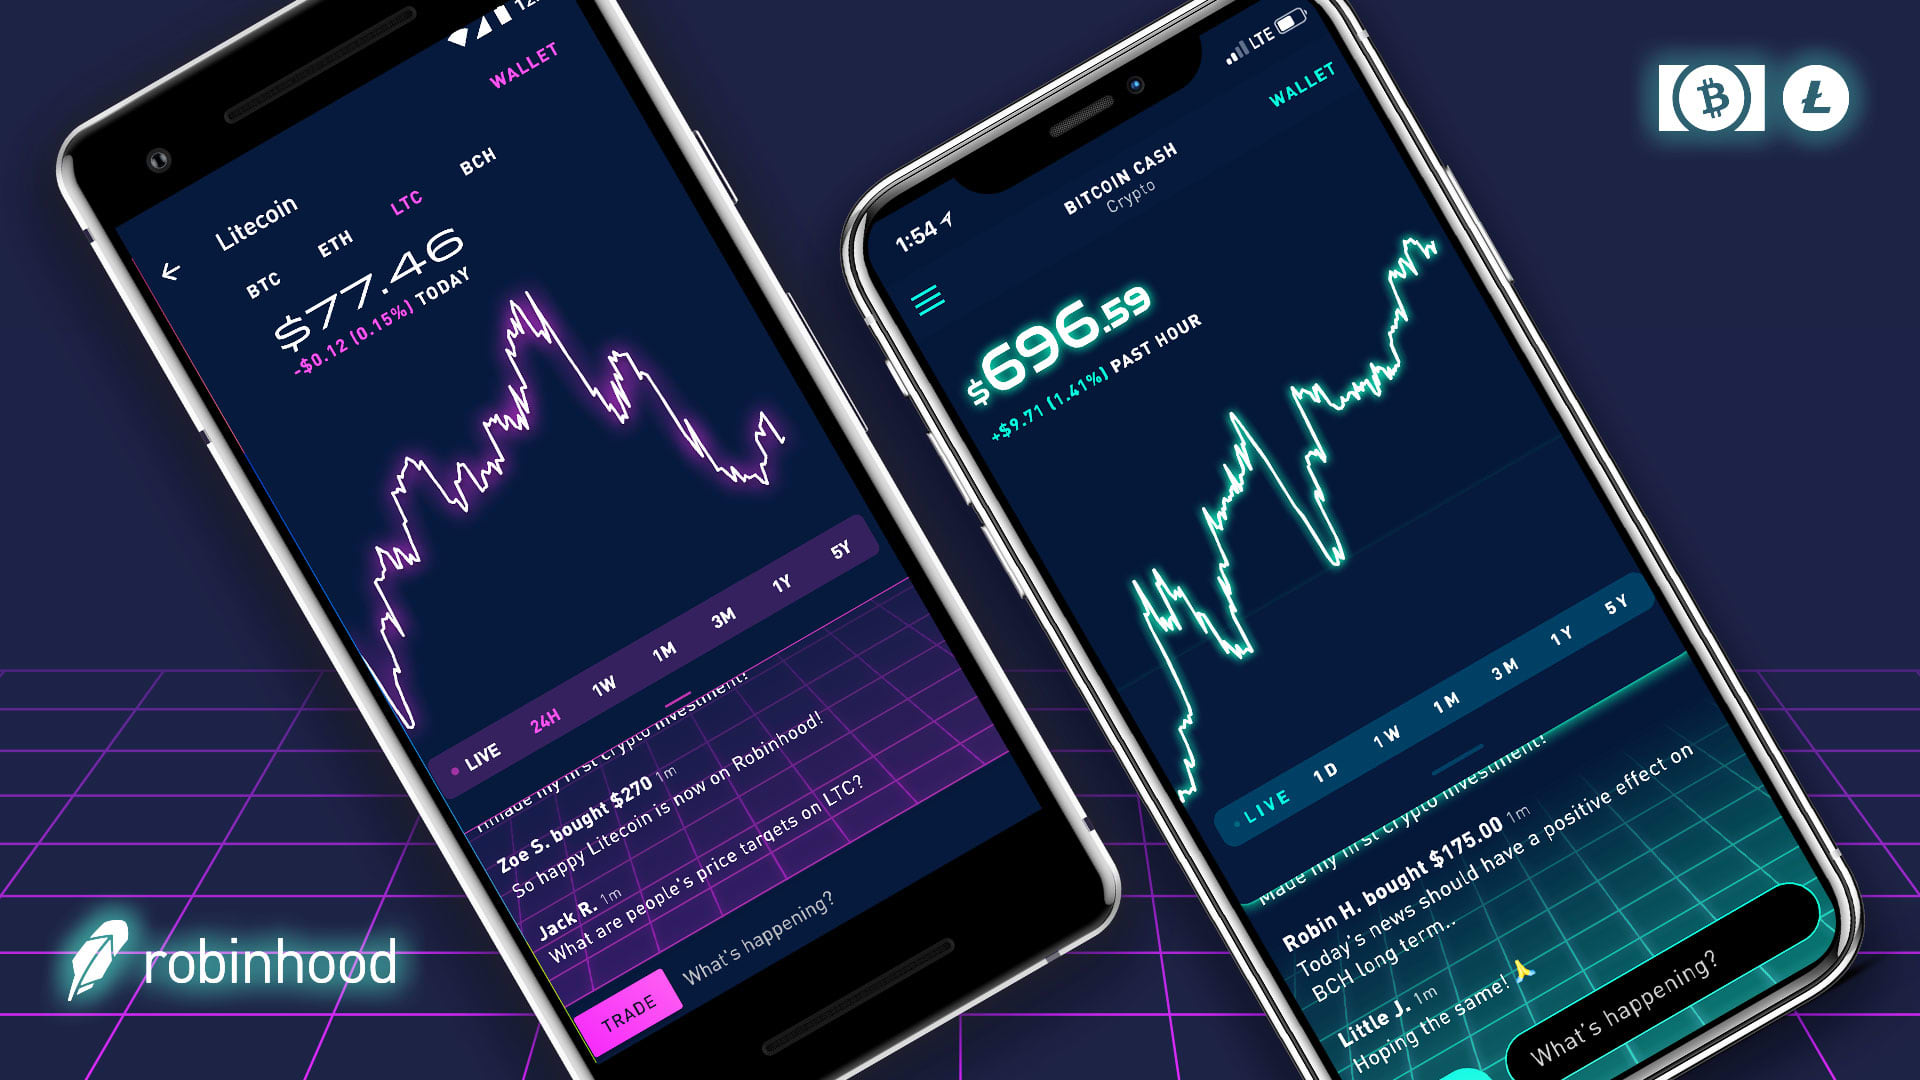 robinhood-recklessly-gamifies-investing-massachusetts-official-says